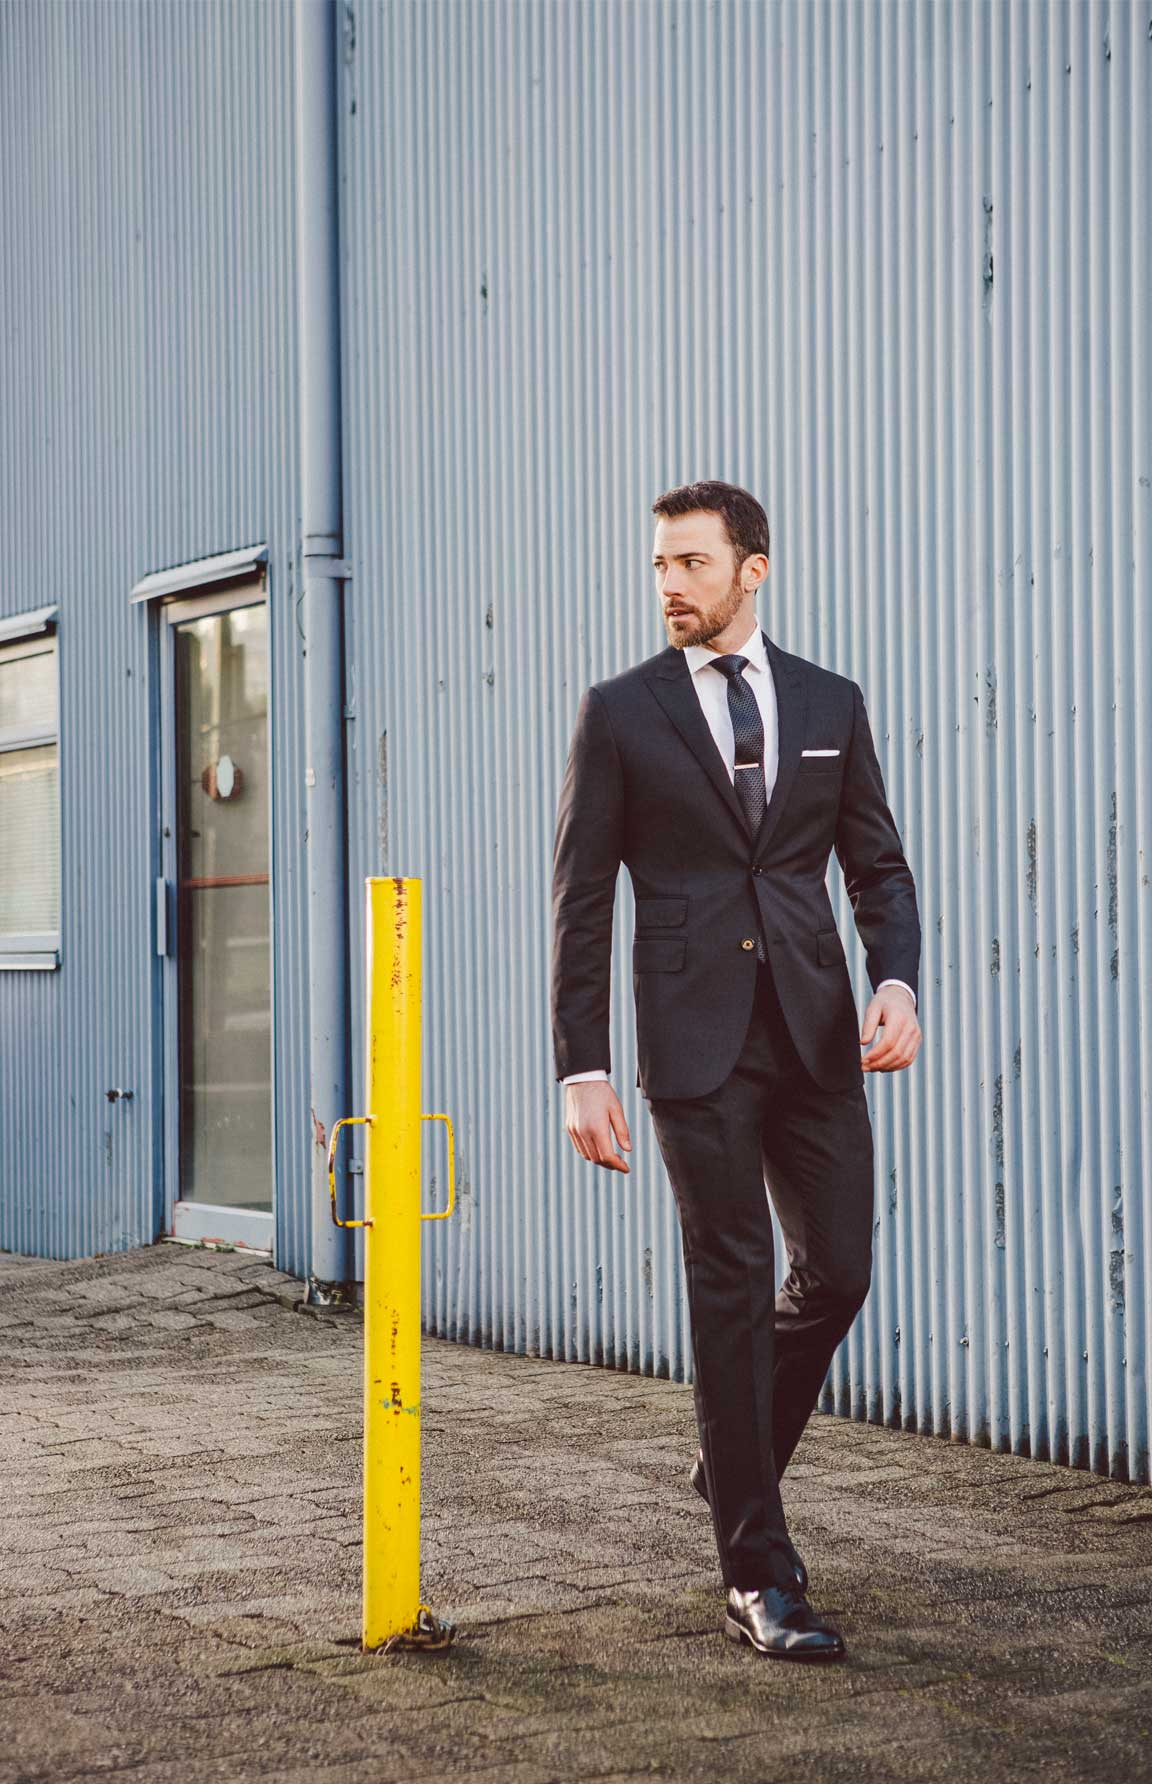 Super Suit: What is a Super Number? How to distinguish suit quality and fit-for-occasion with super numbers.